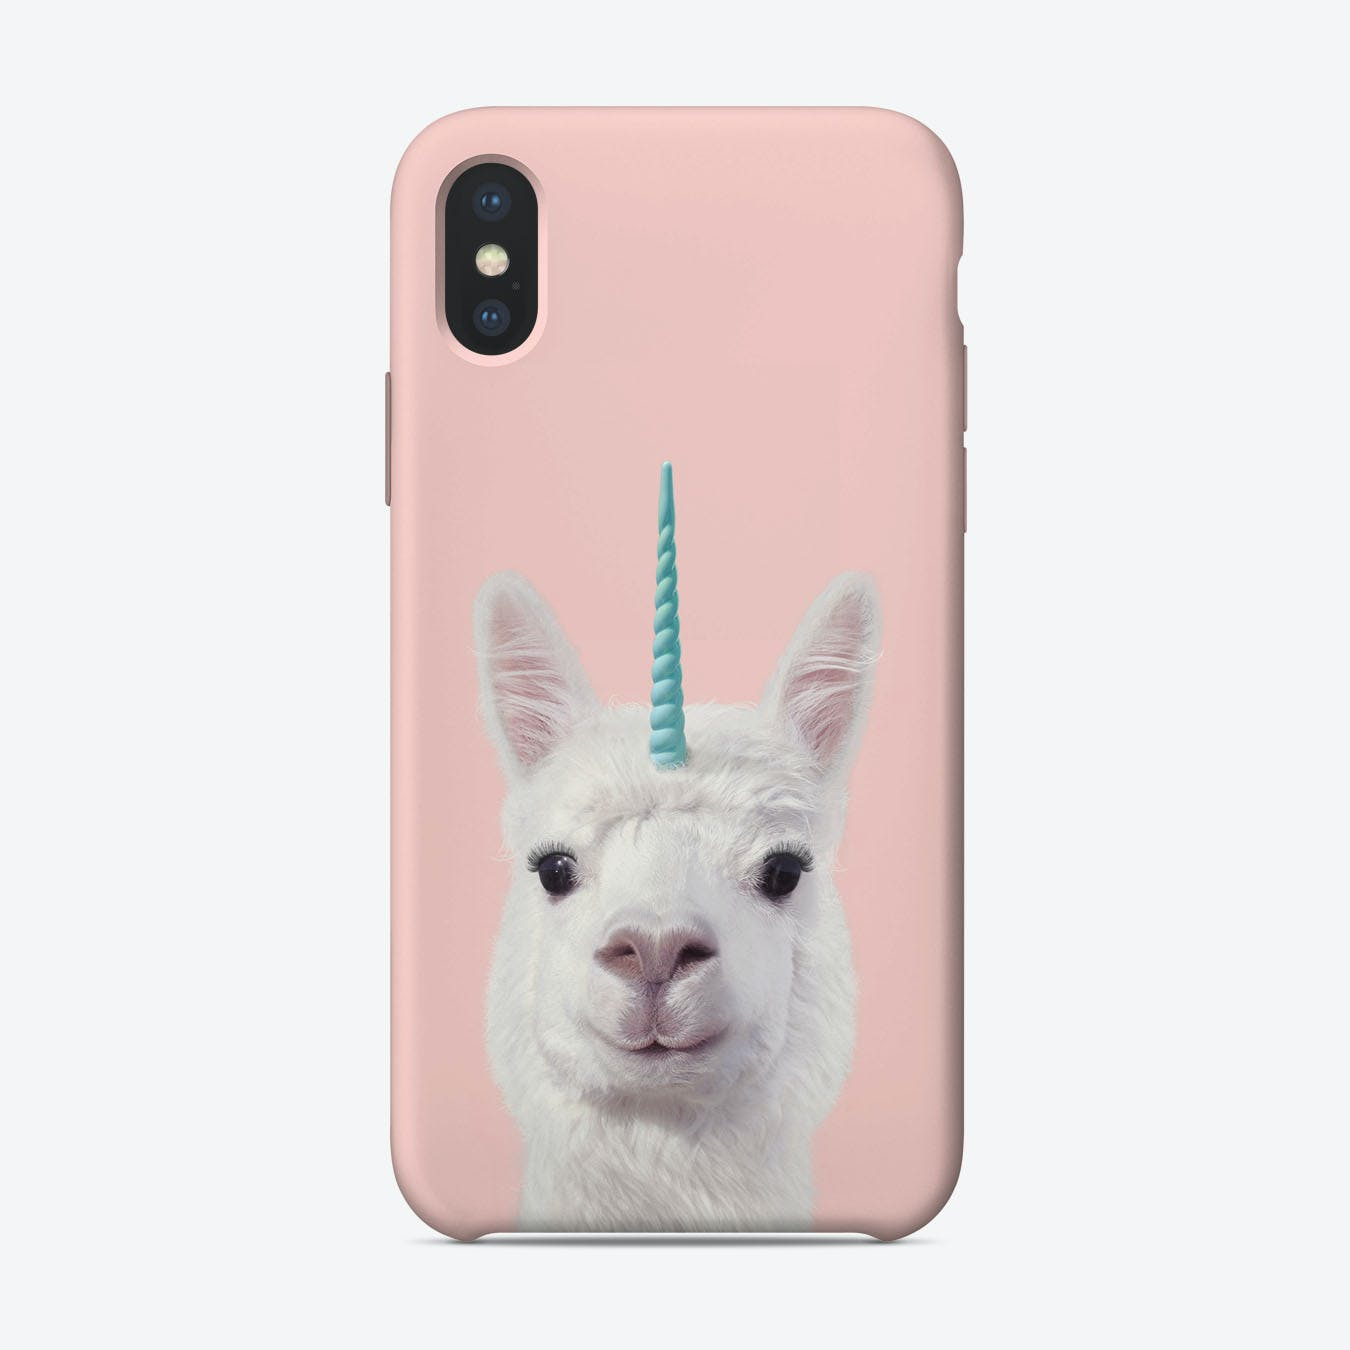 Alpaca Unicorn iPhone Case